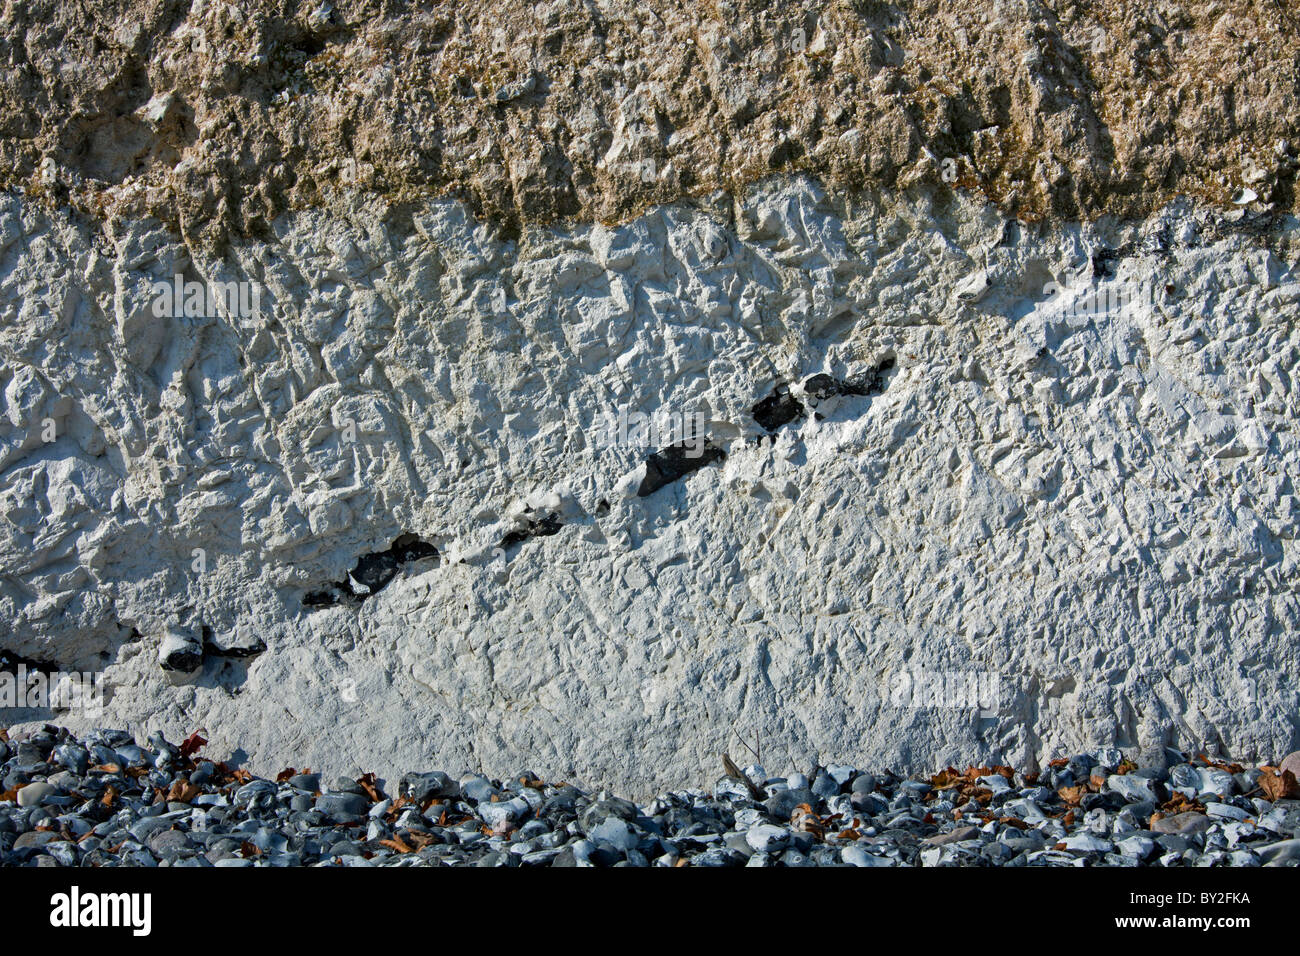 Chalk cliff showing layers of flint rock in Jasmund National Park on Rugen Island on the Baltic Sea, Germany - Stock Image